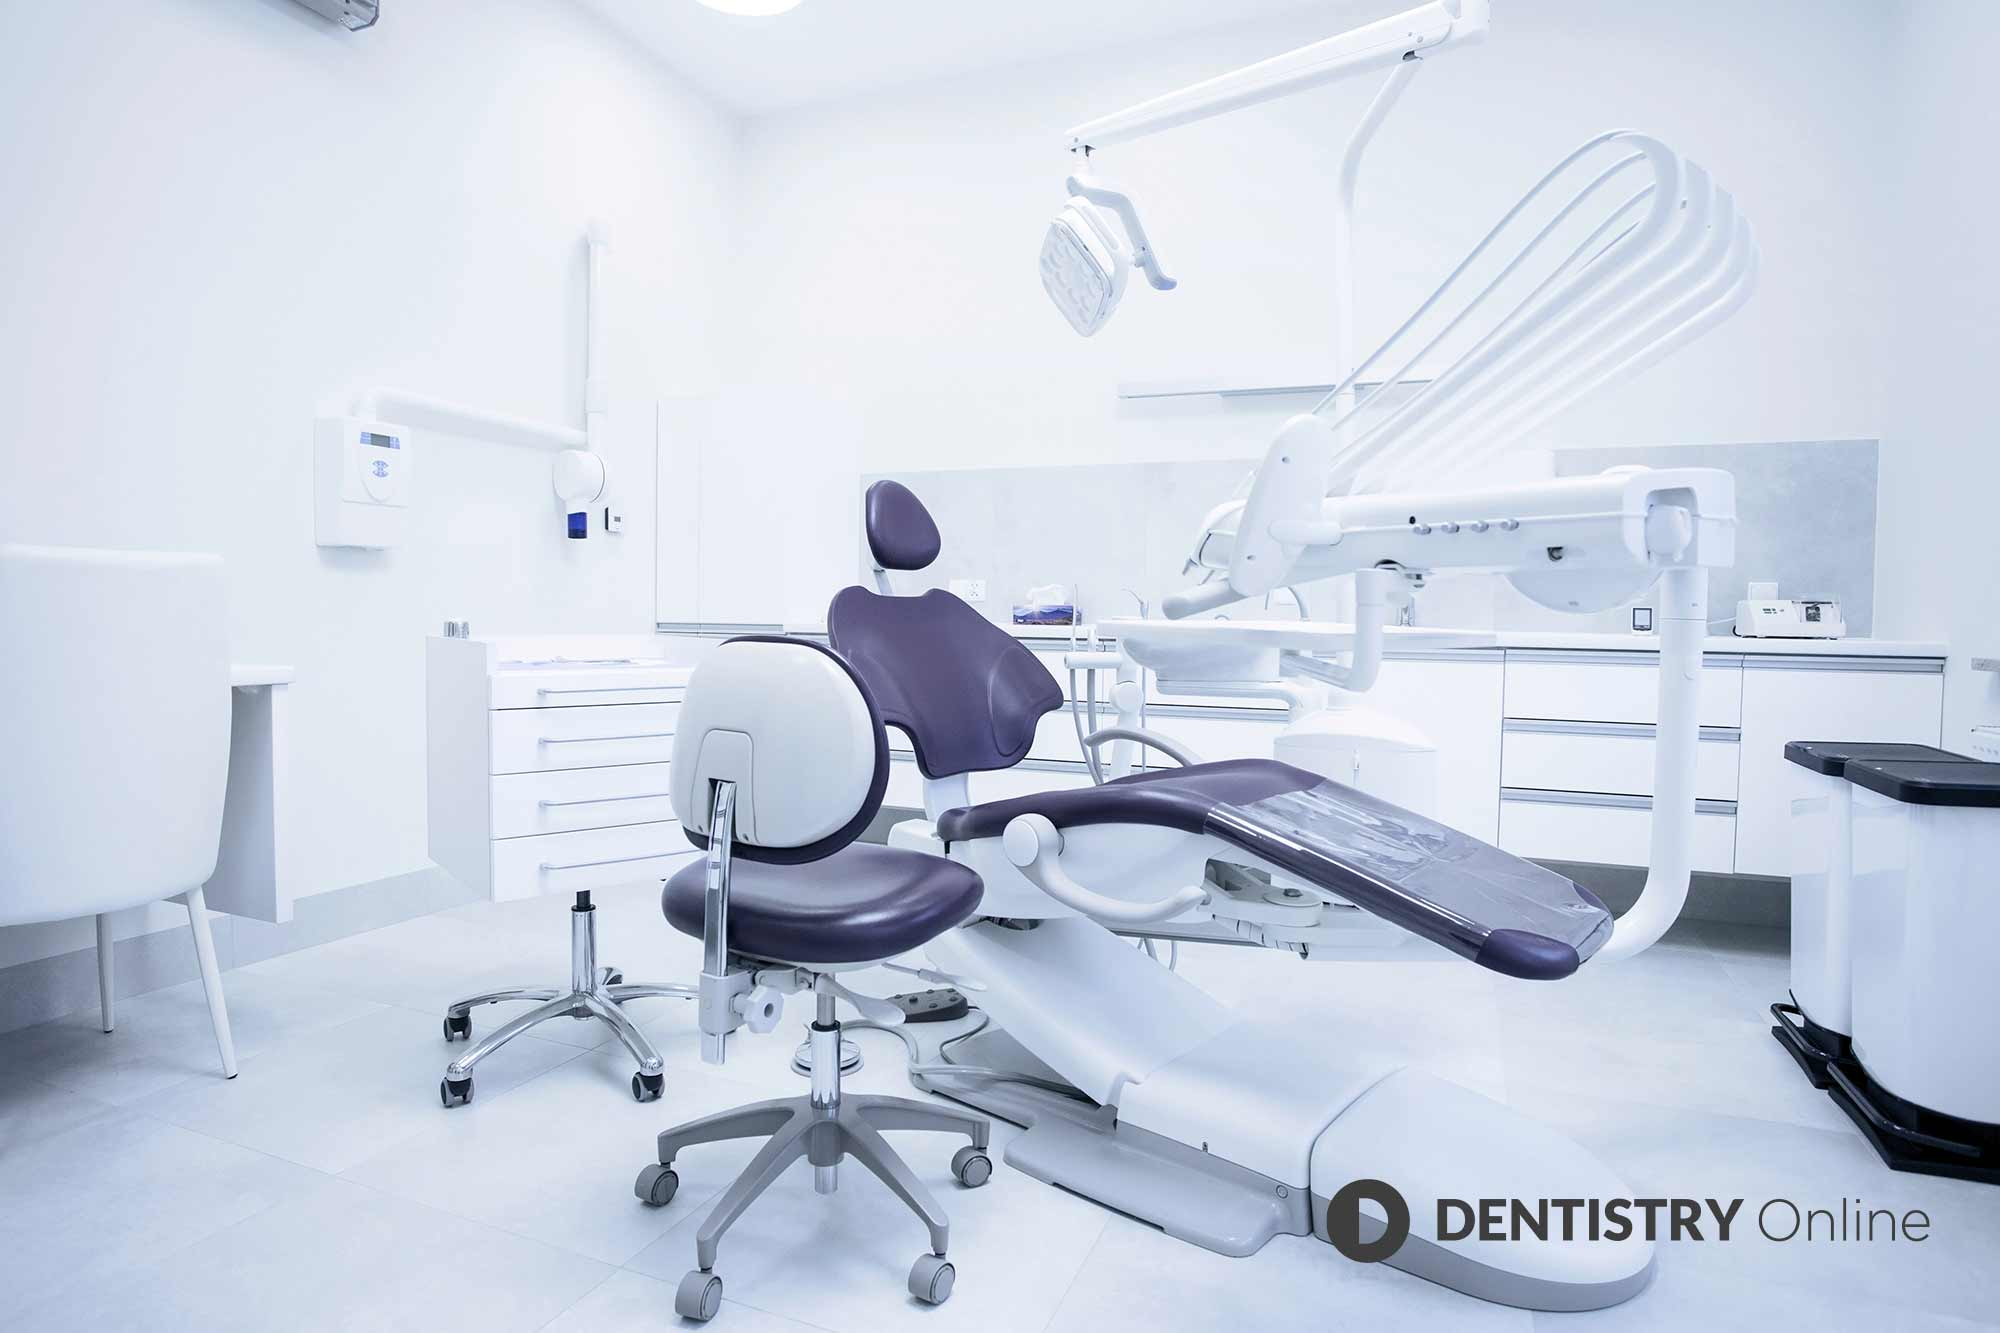 The dental market has had a 'strong recovery' from the impact of the pandemic